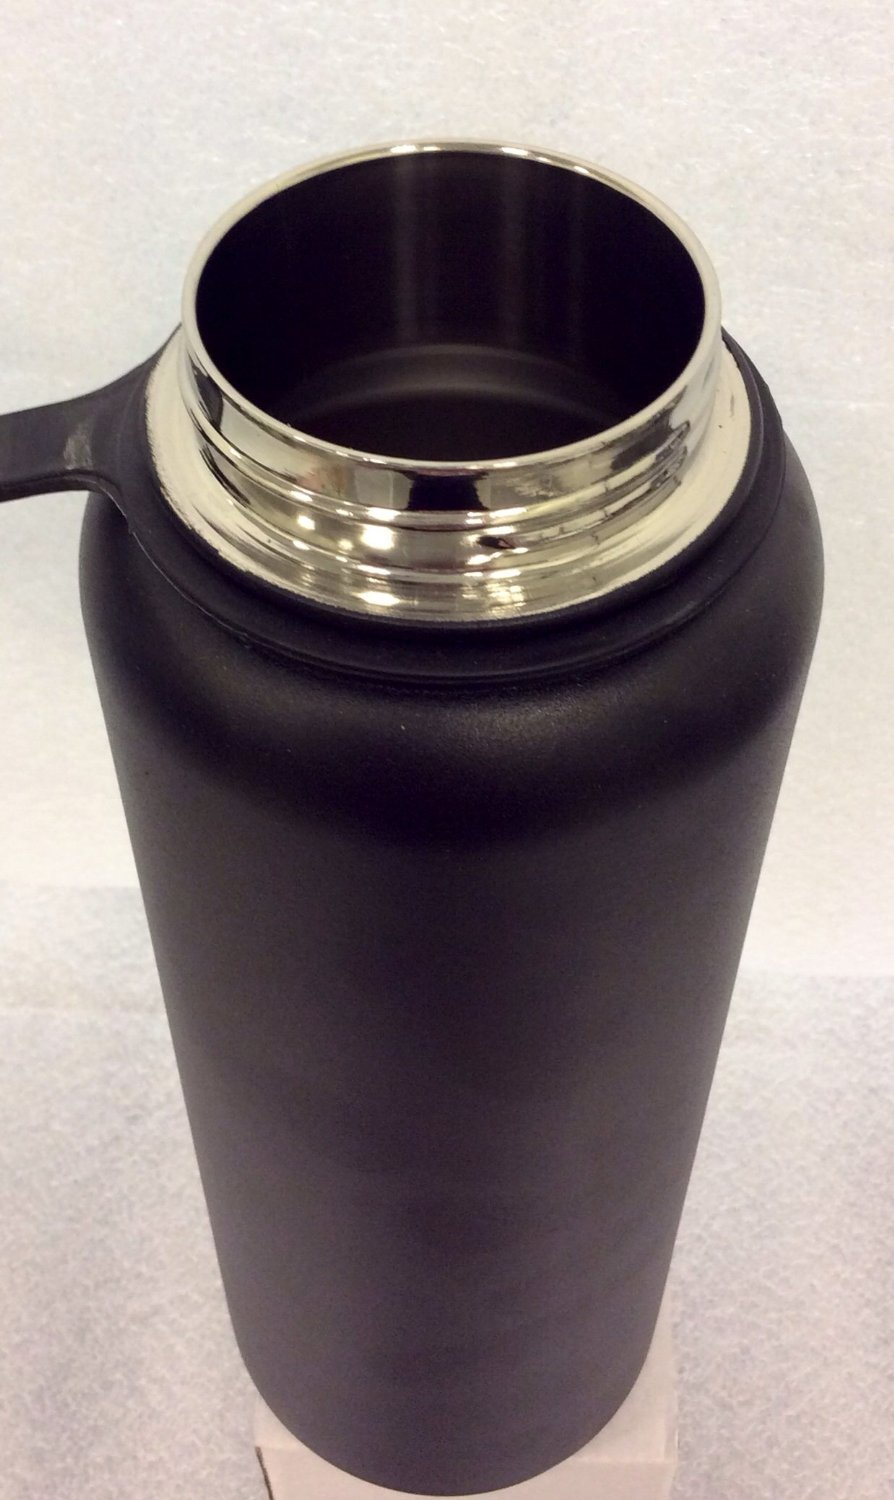 Insulated Stainless Steel Wide Mouth Water Bottle and Beer Growler, 40-ounce by Bargain Home Brew (Image #2)